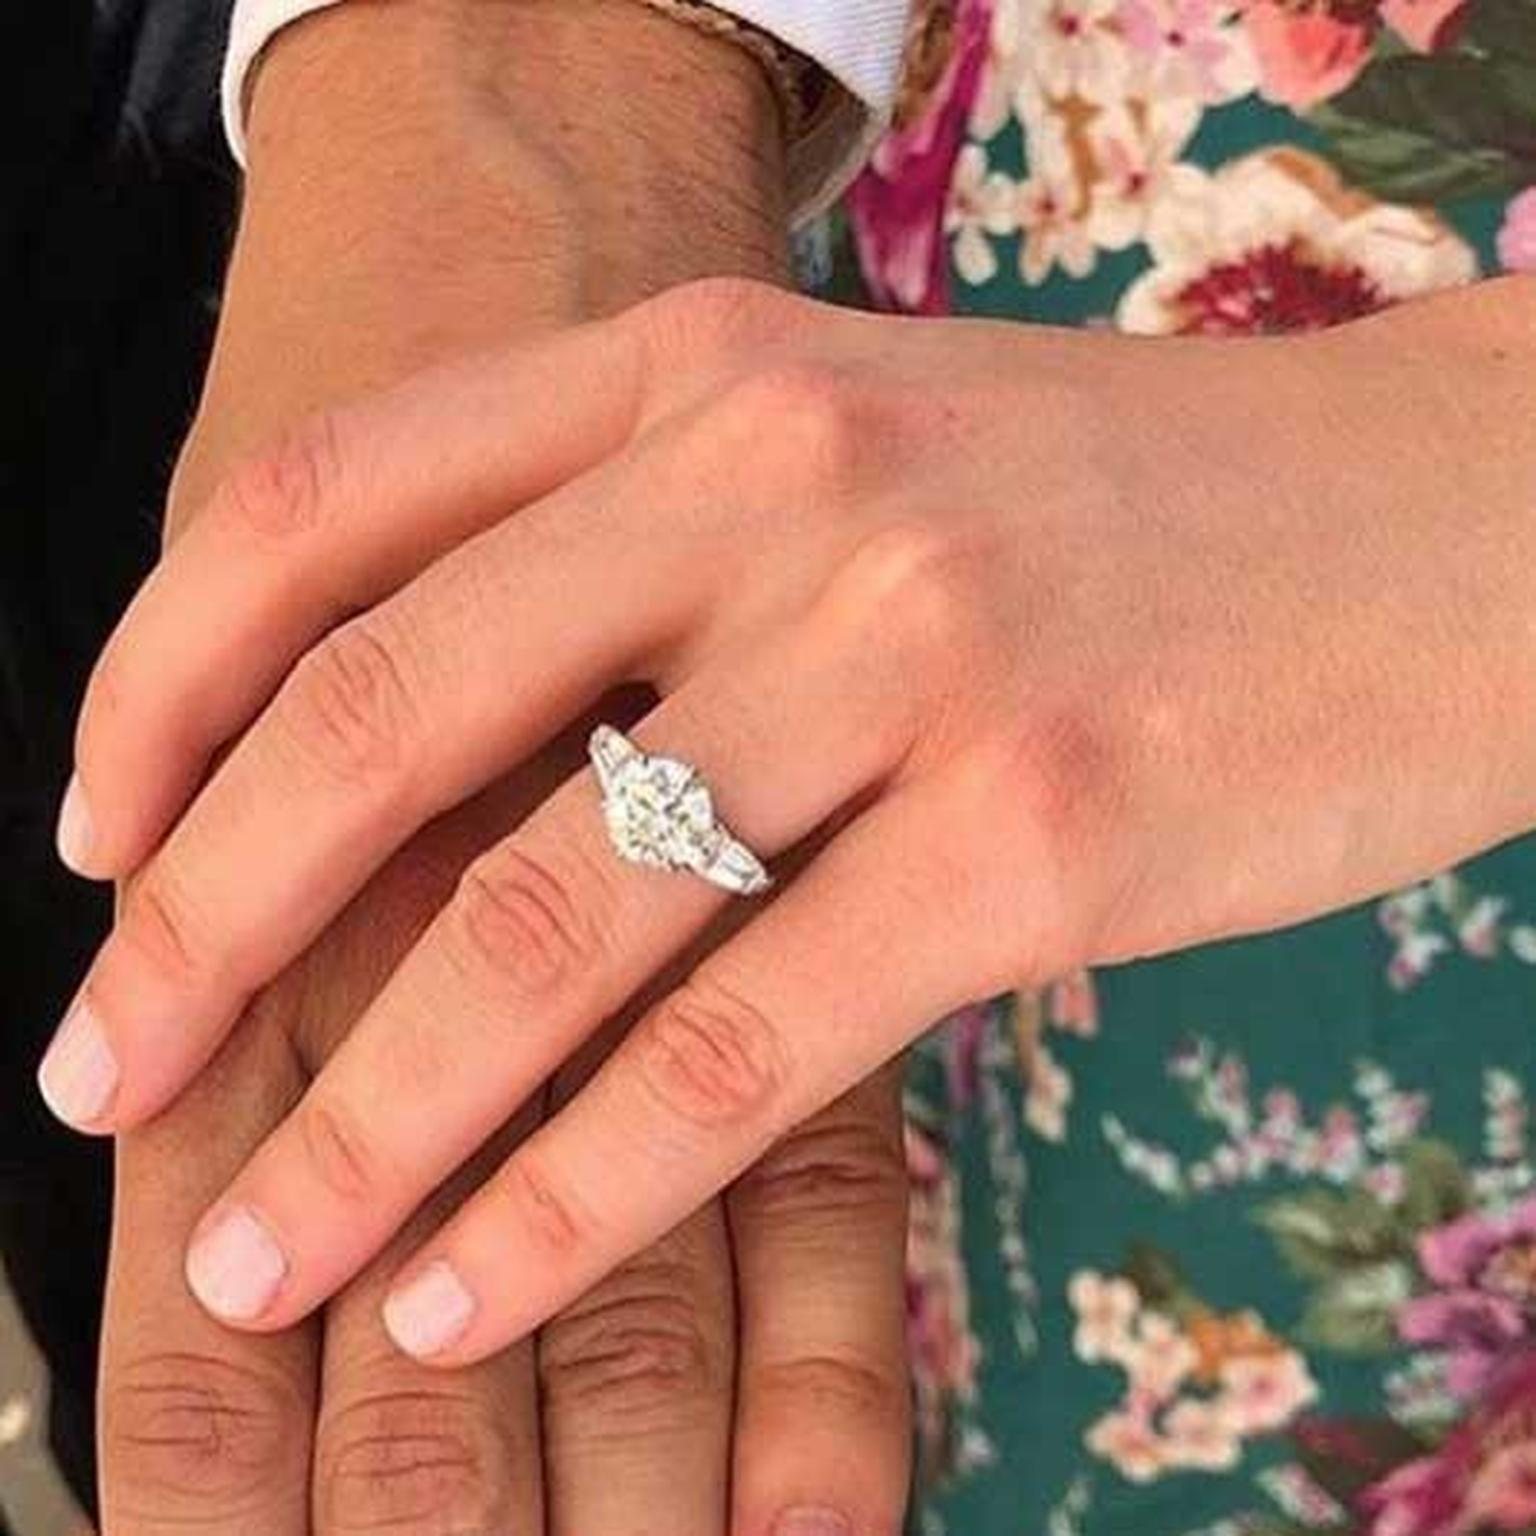 Princess Beatrice engagement ring close up on hand